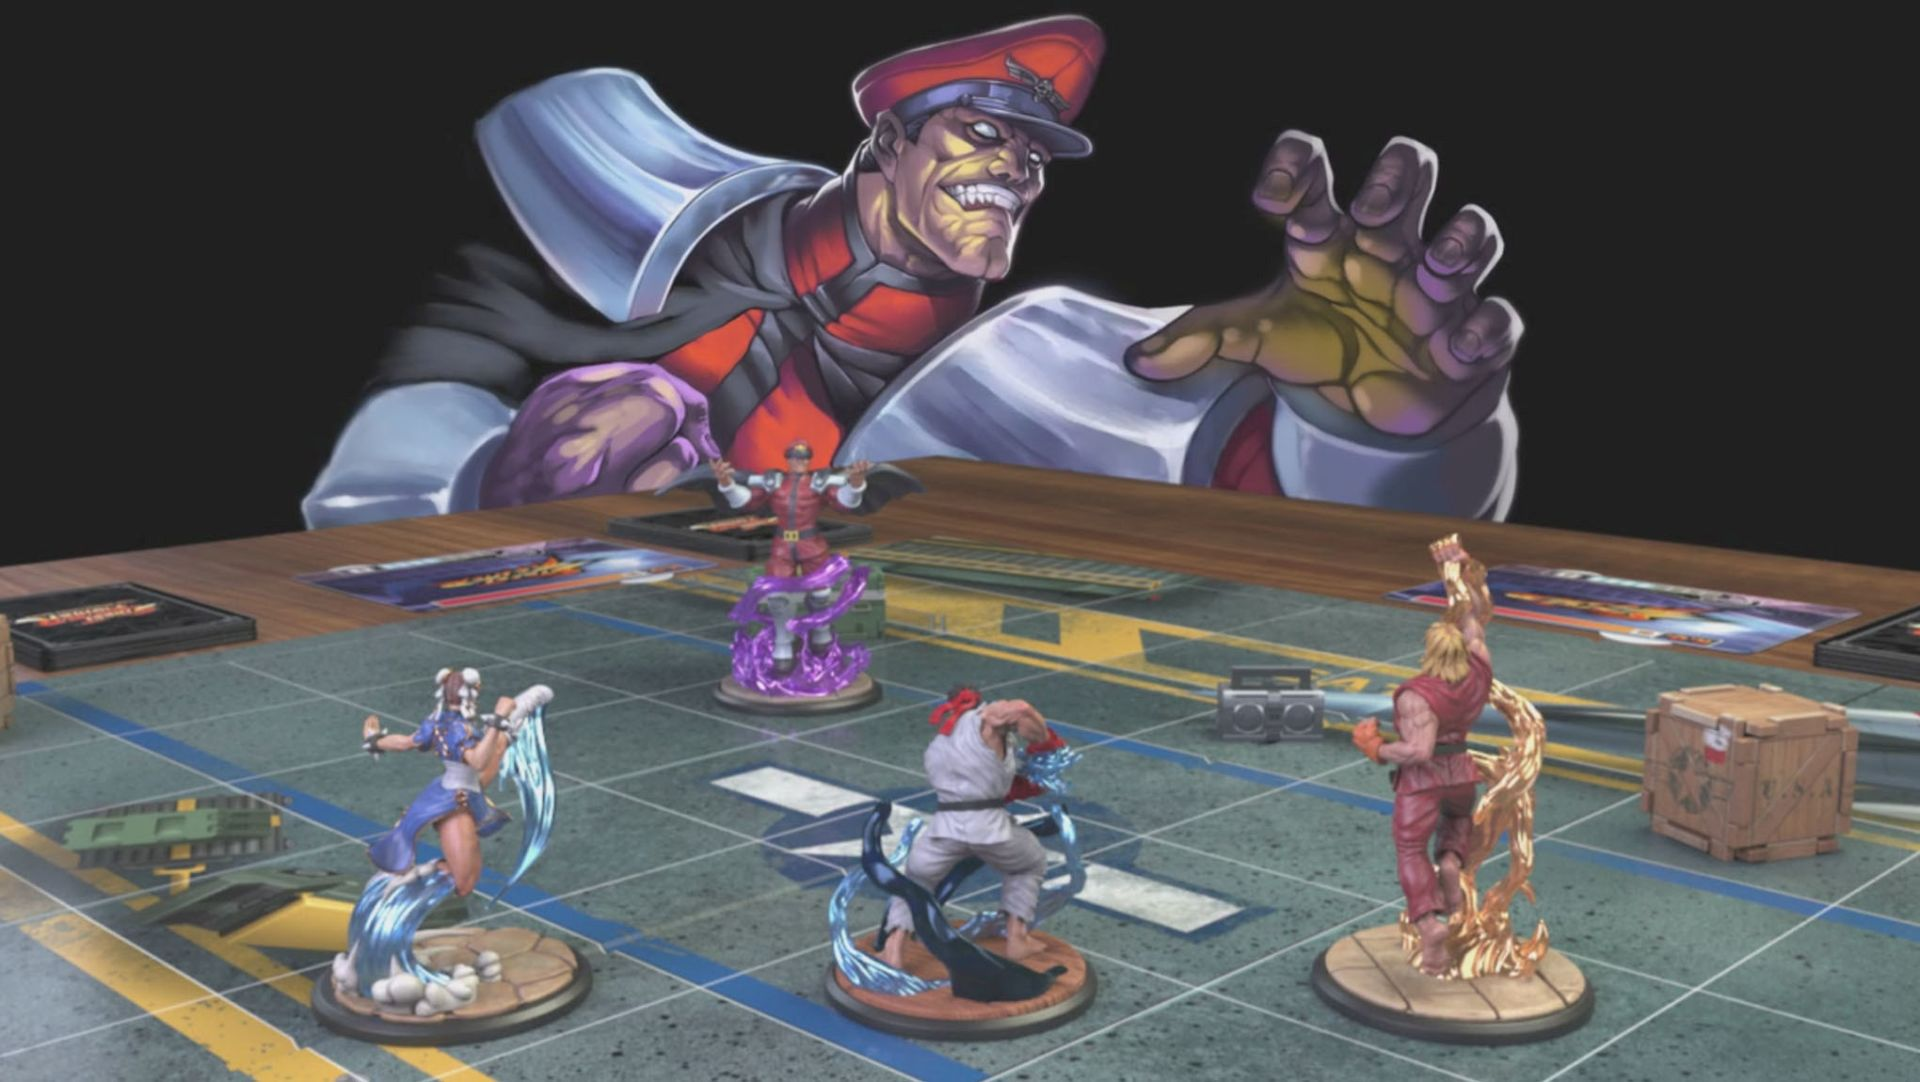 Street Fighter: The Miniature Game skupio traženo na Kickstarteru